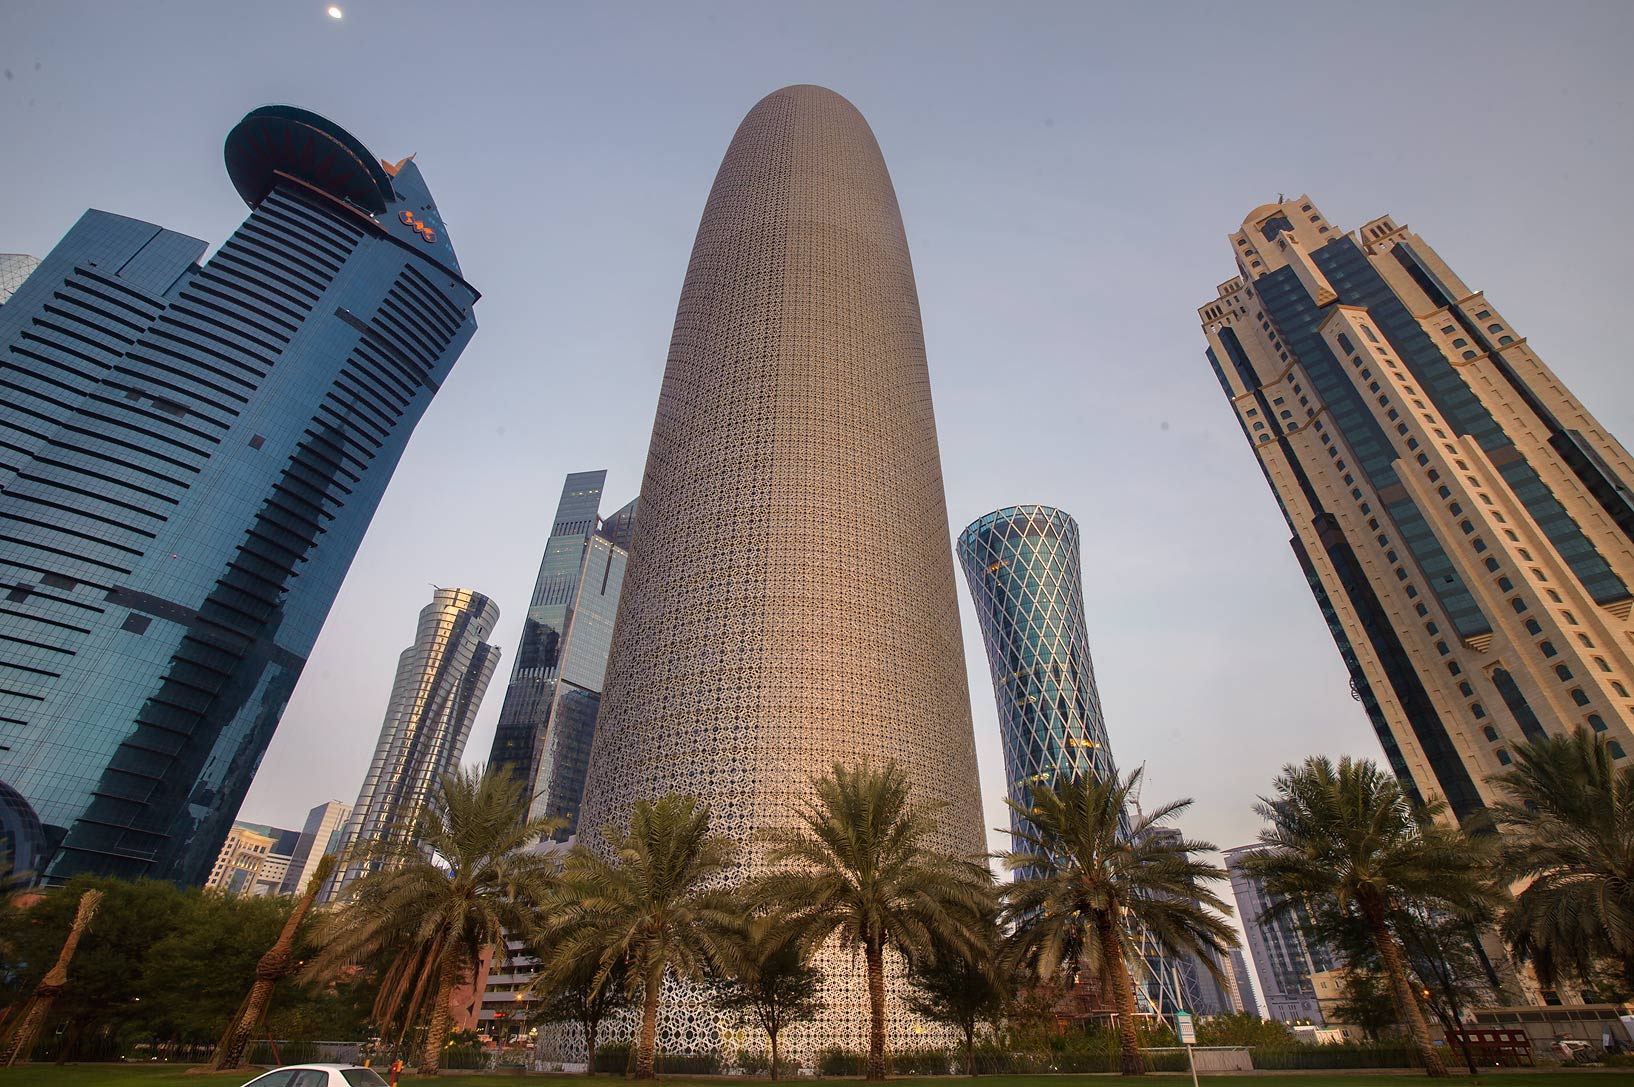 Word Trade Center, Burj Qatar, and Al Jassimiya...view from Corniche. Doha, Qatar